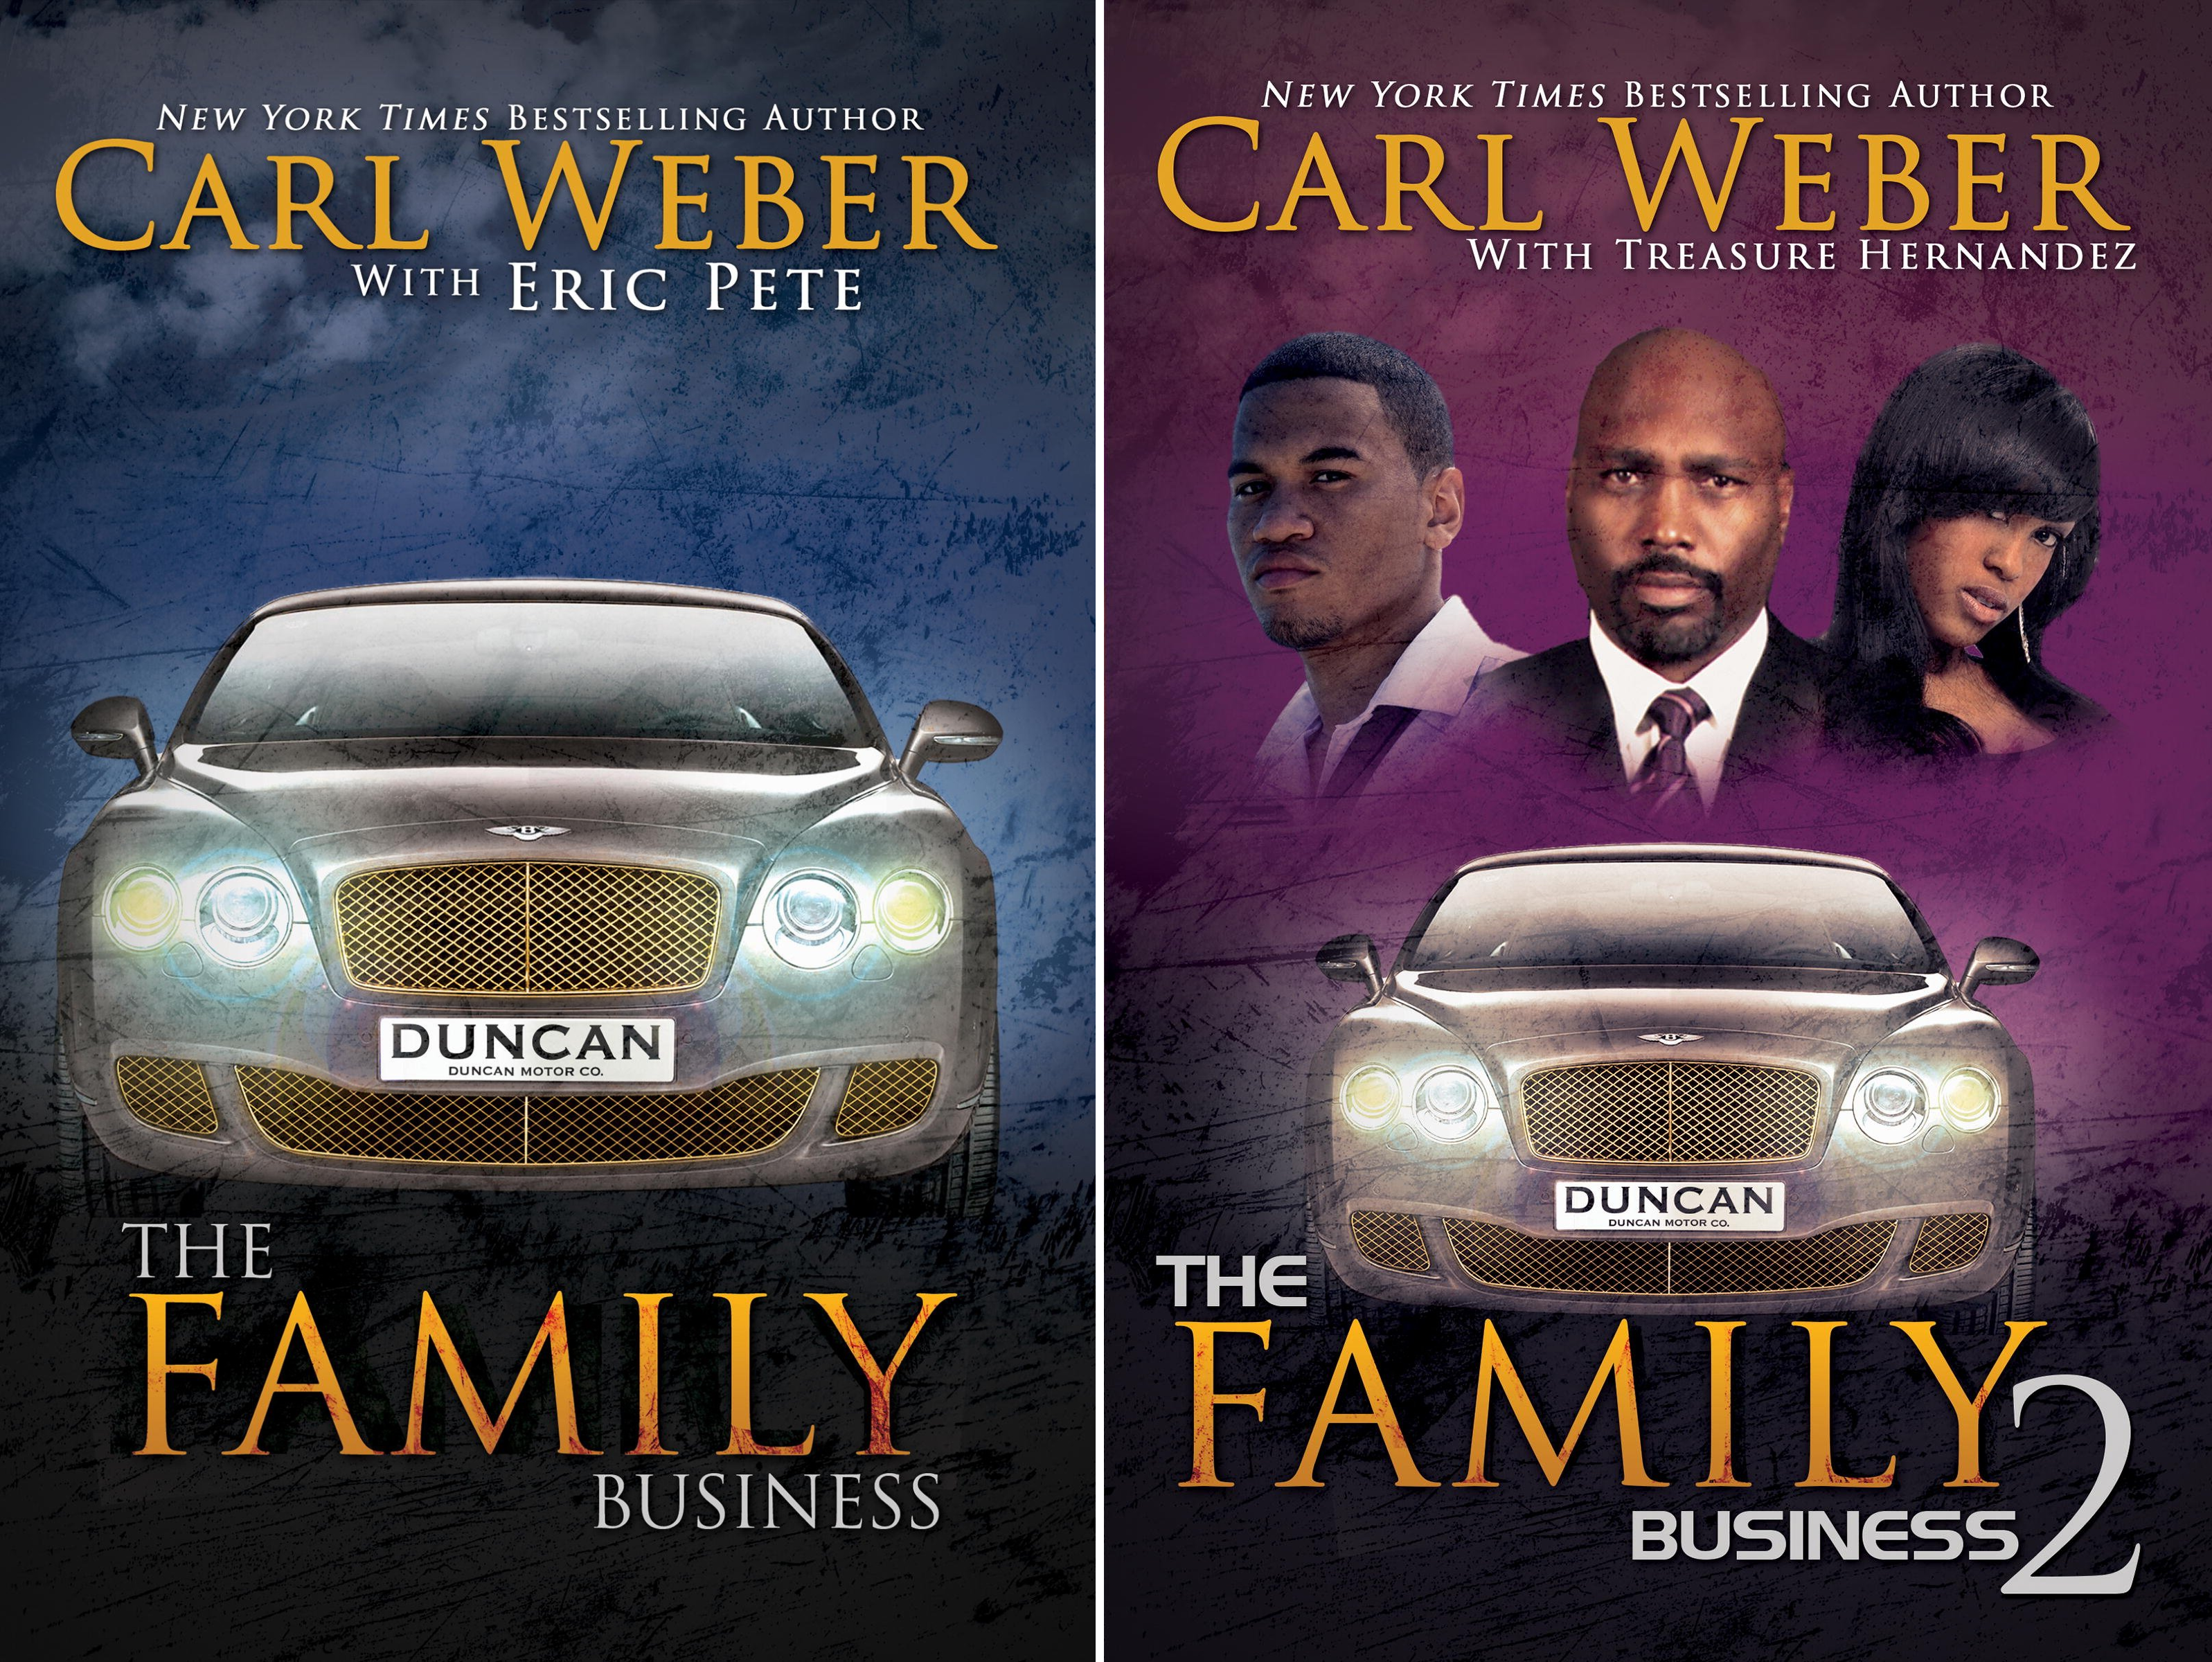 The Family Business (2 Book Series)